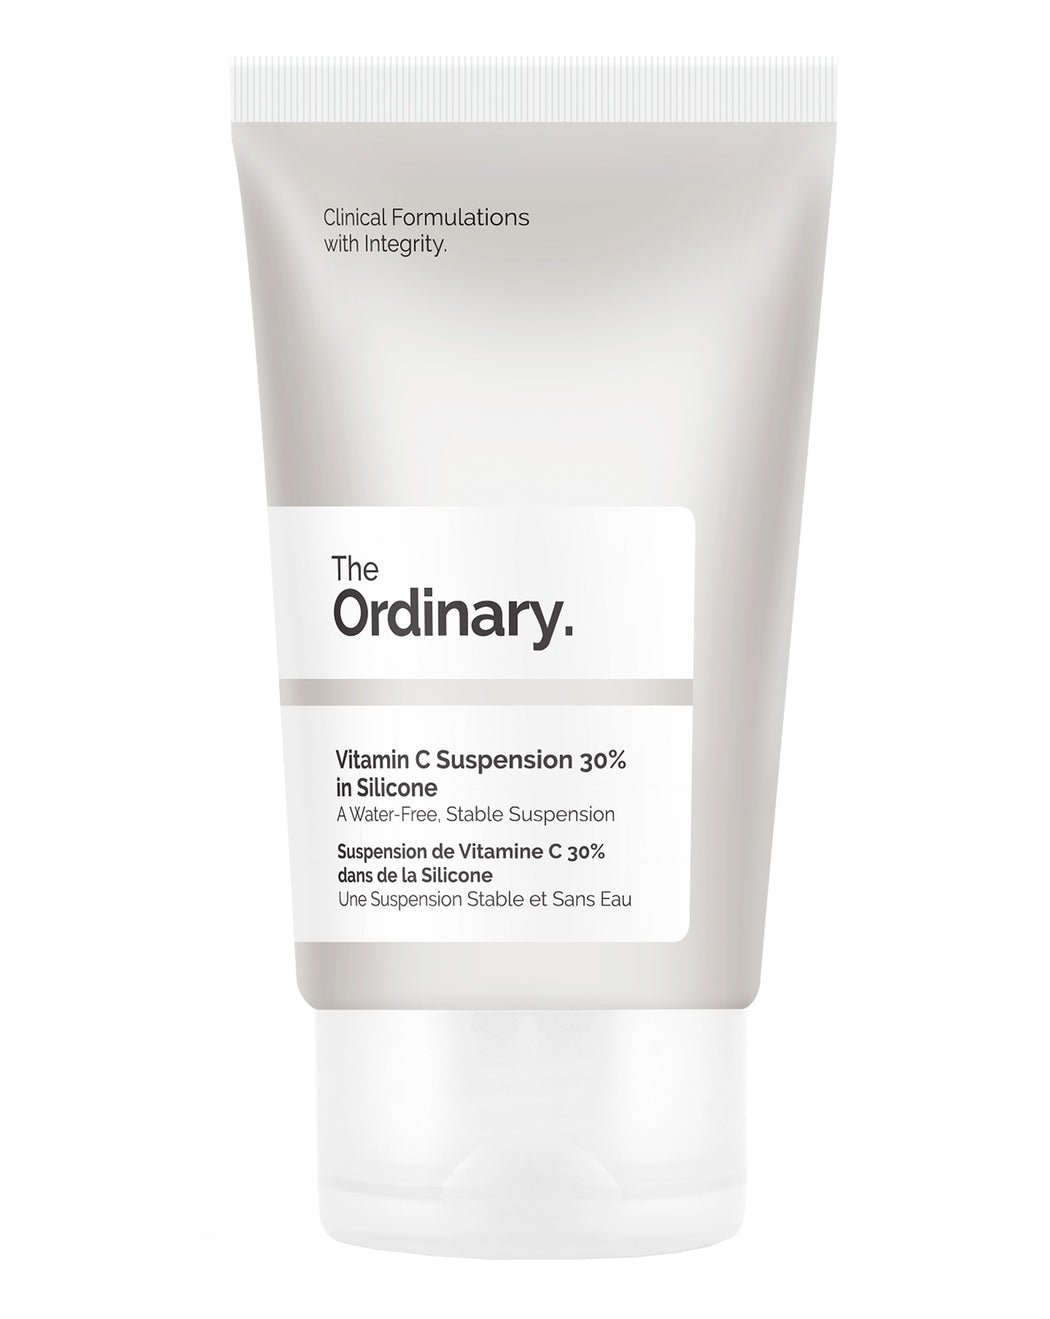 [The Ordinary - Deciem] Vitamin C Suspension 30% in Silicone - 30ml